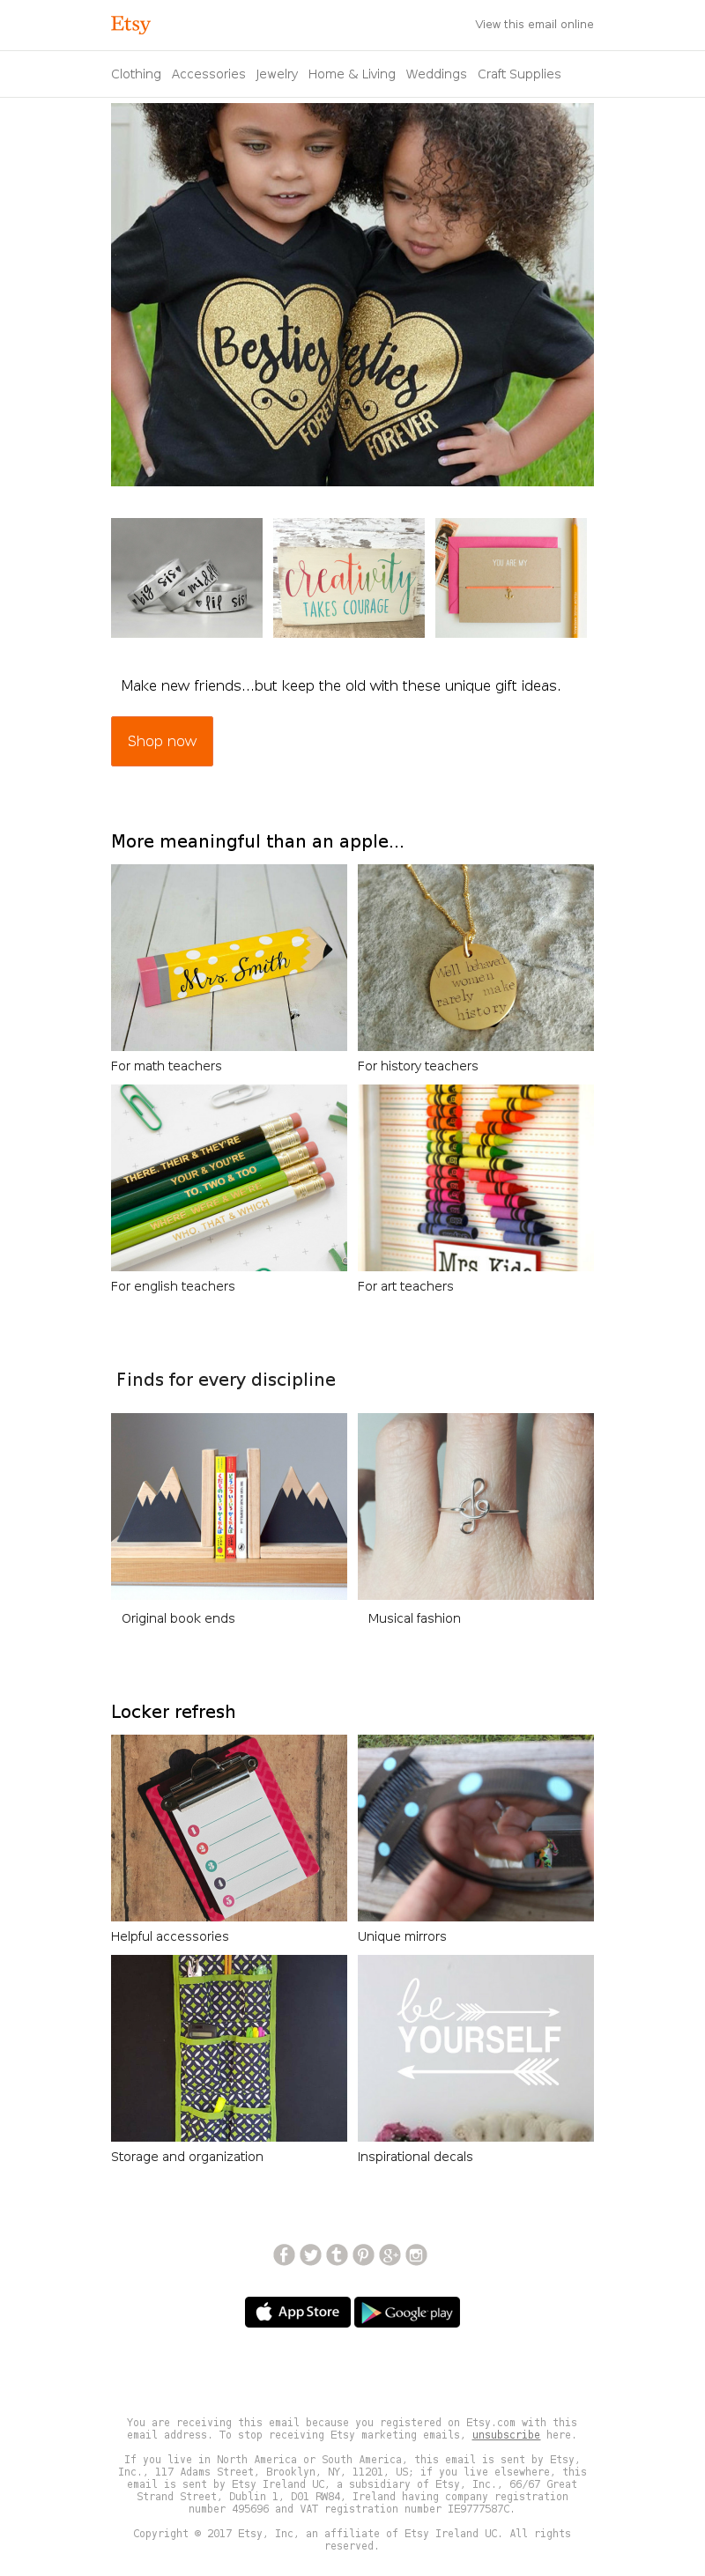 Back to school email example from Etsy